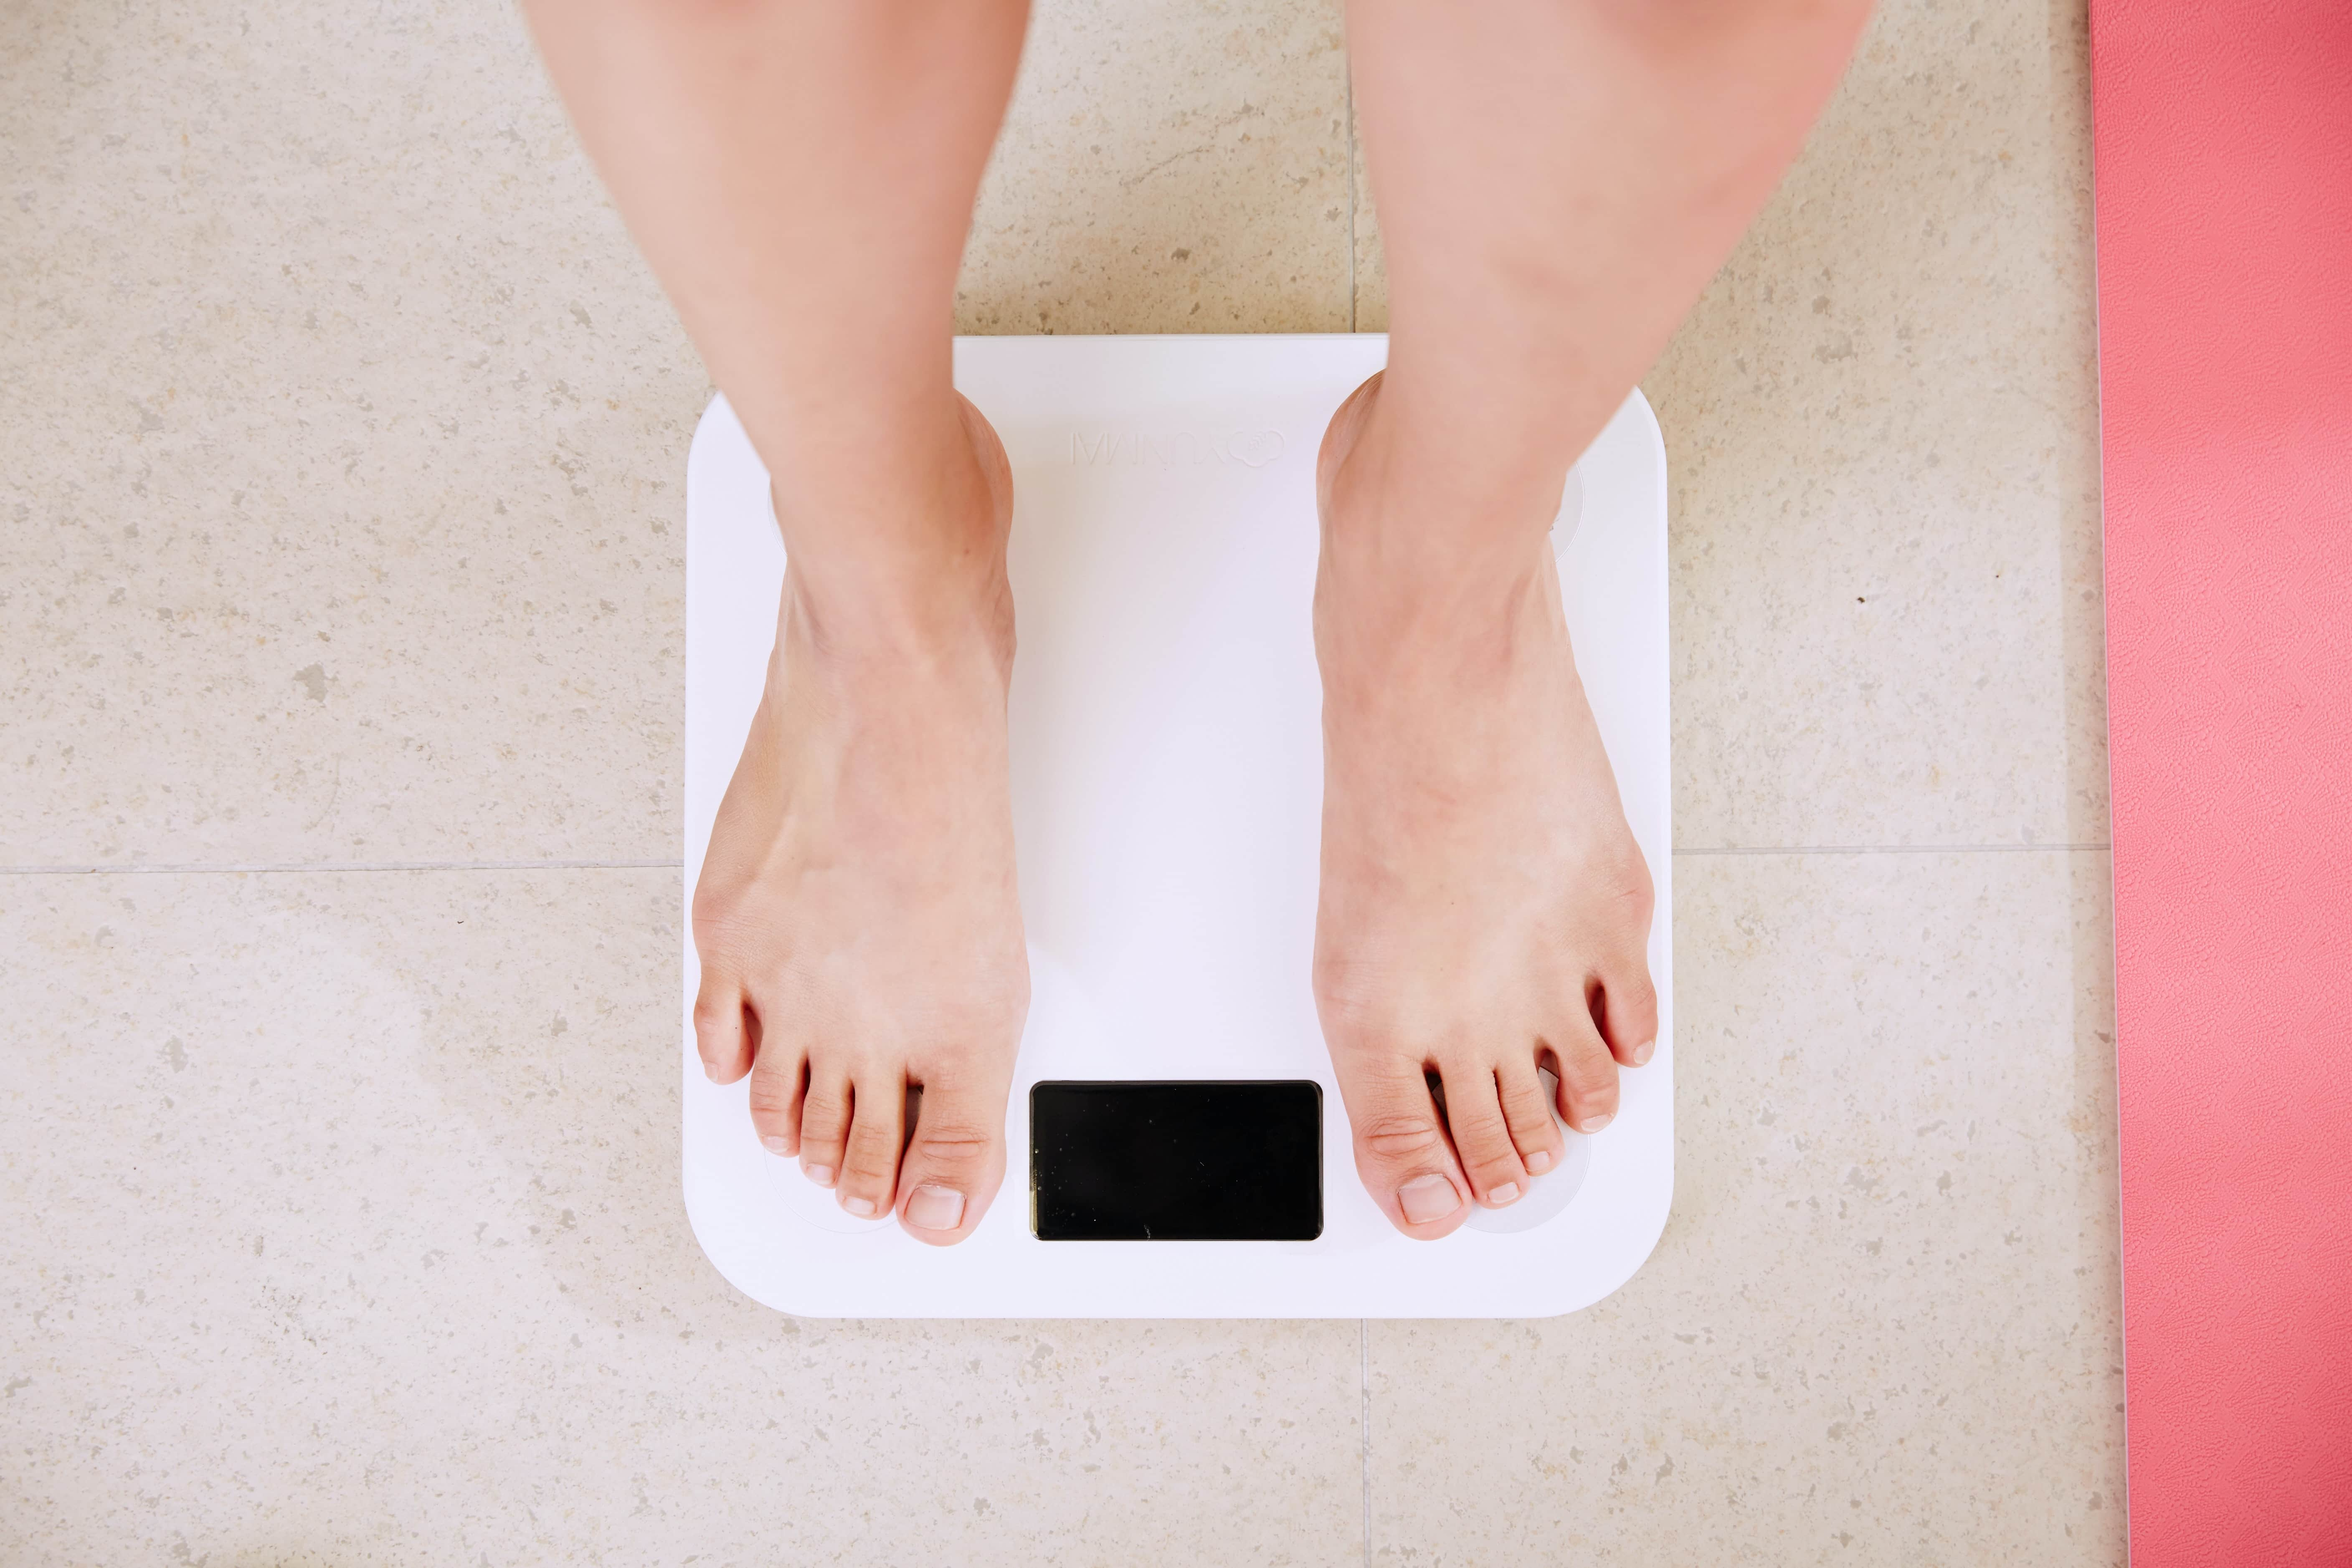 hypnosis for weight loss greater toronto area